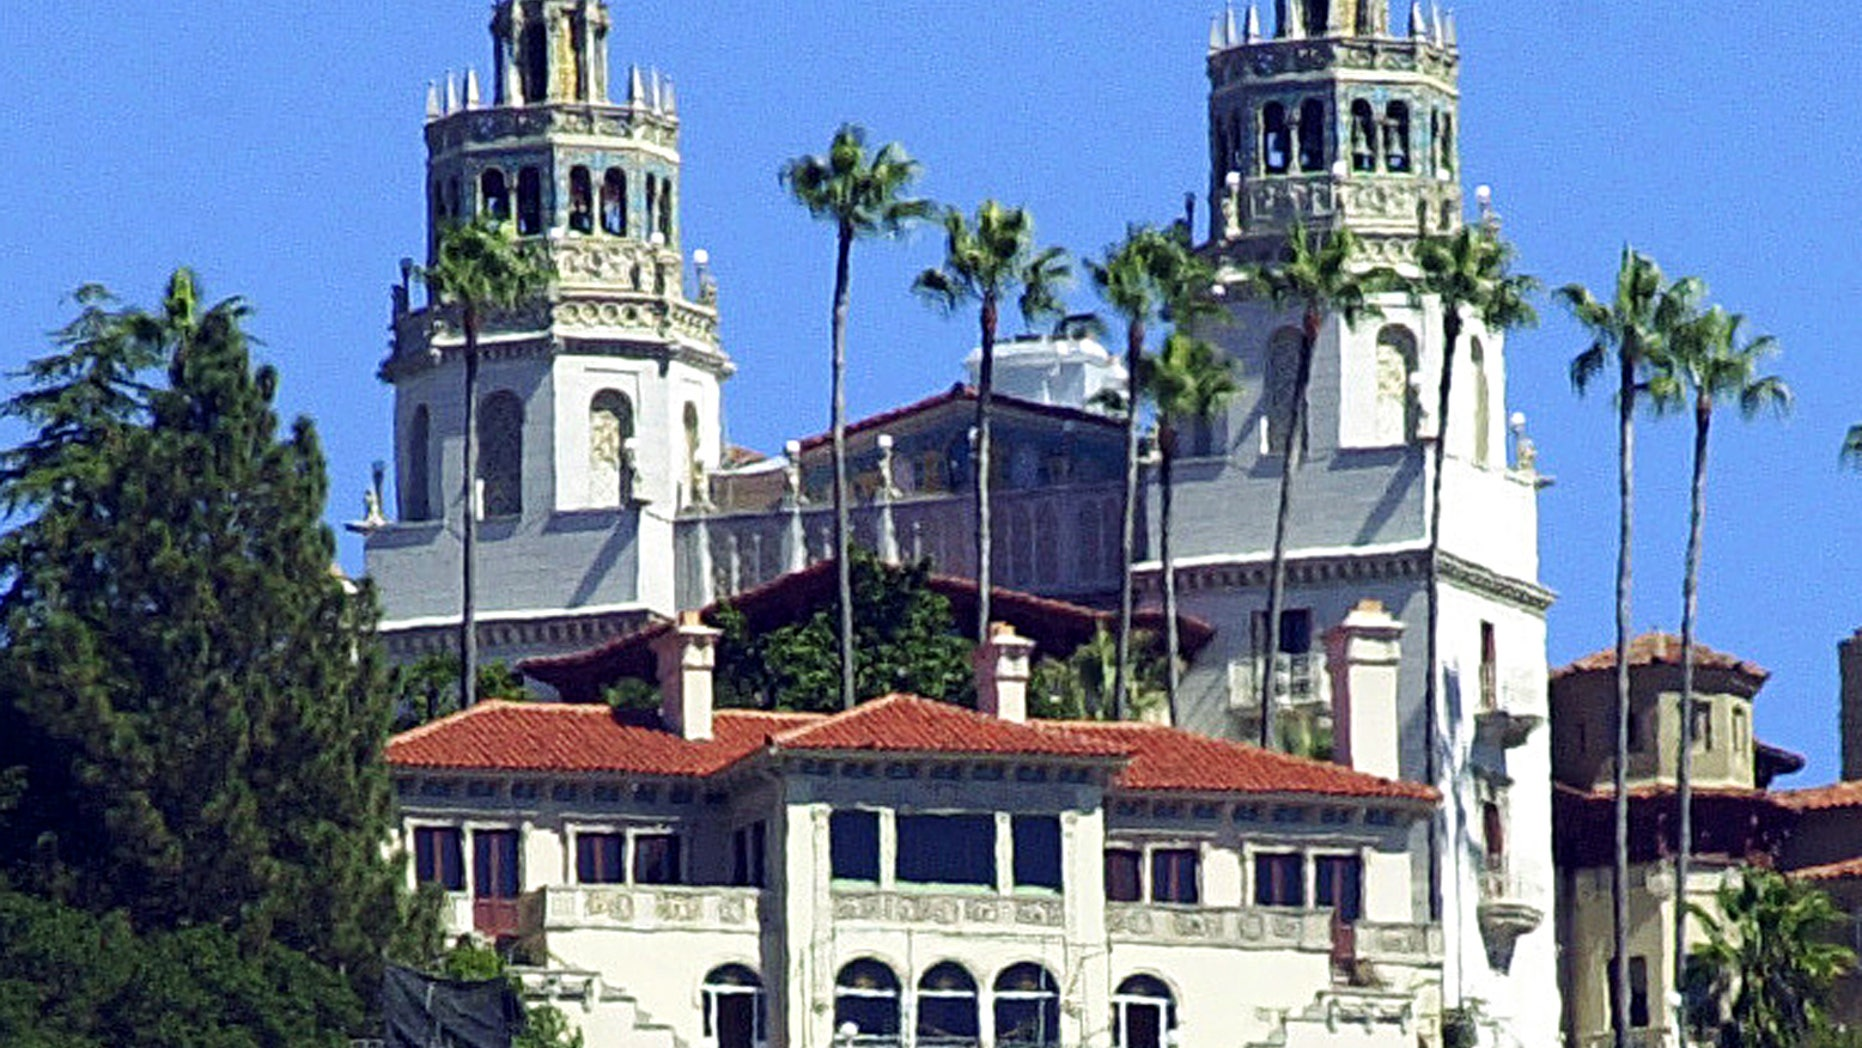 Sept. 28, 2001.The Enchanted Hill, the legendary home now best known as Hearst Castle, built by publishing tycoon William Randolph Hearst in San Simeon, Calif.